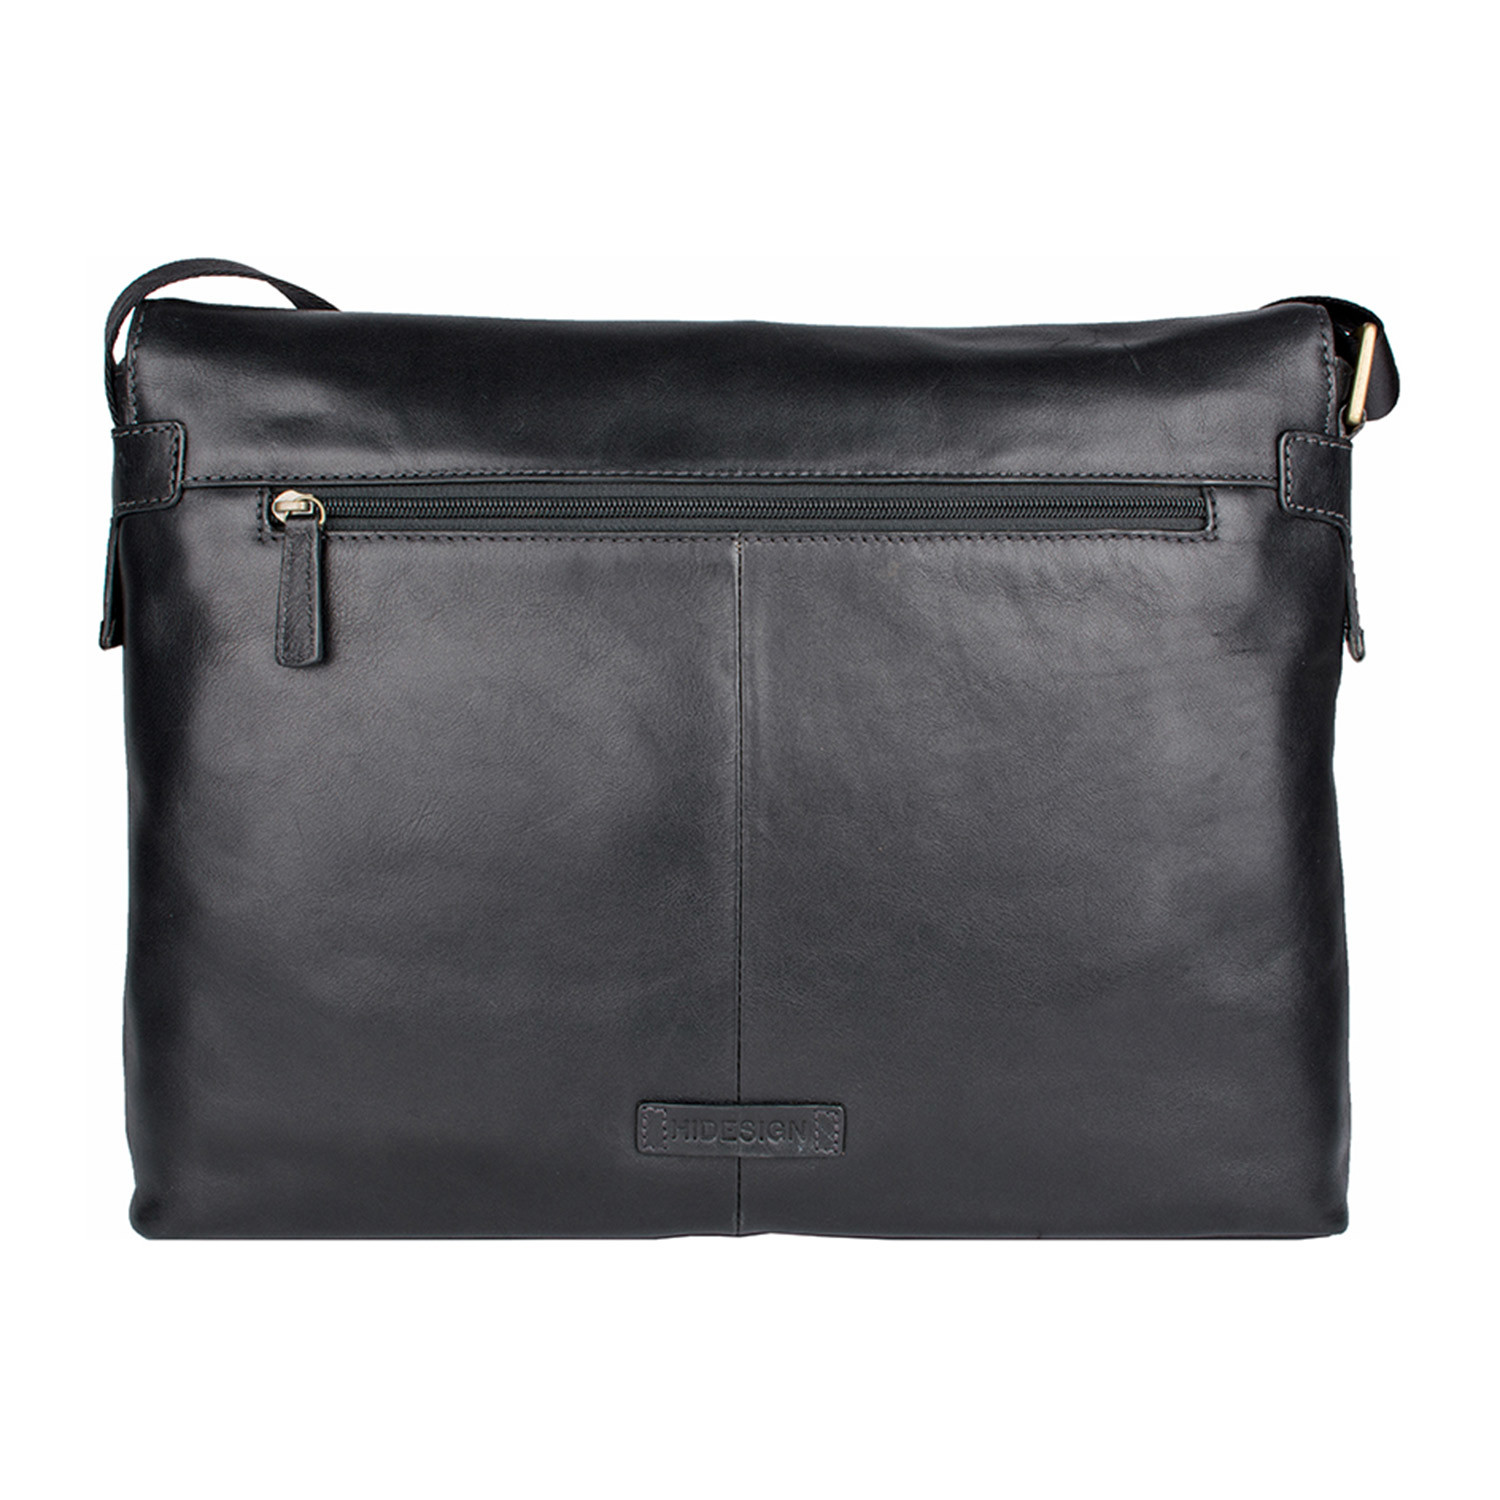 Helvellyn Leather Messenger Black Medium Hidesign